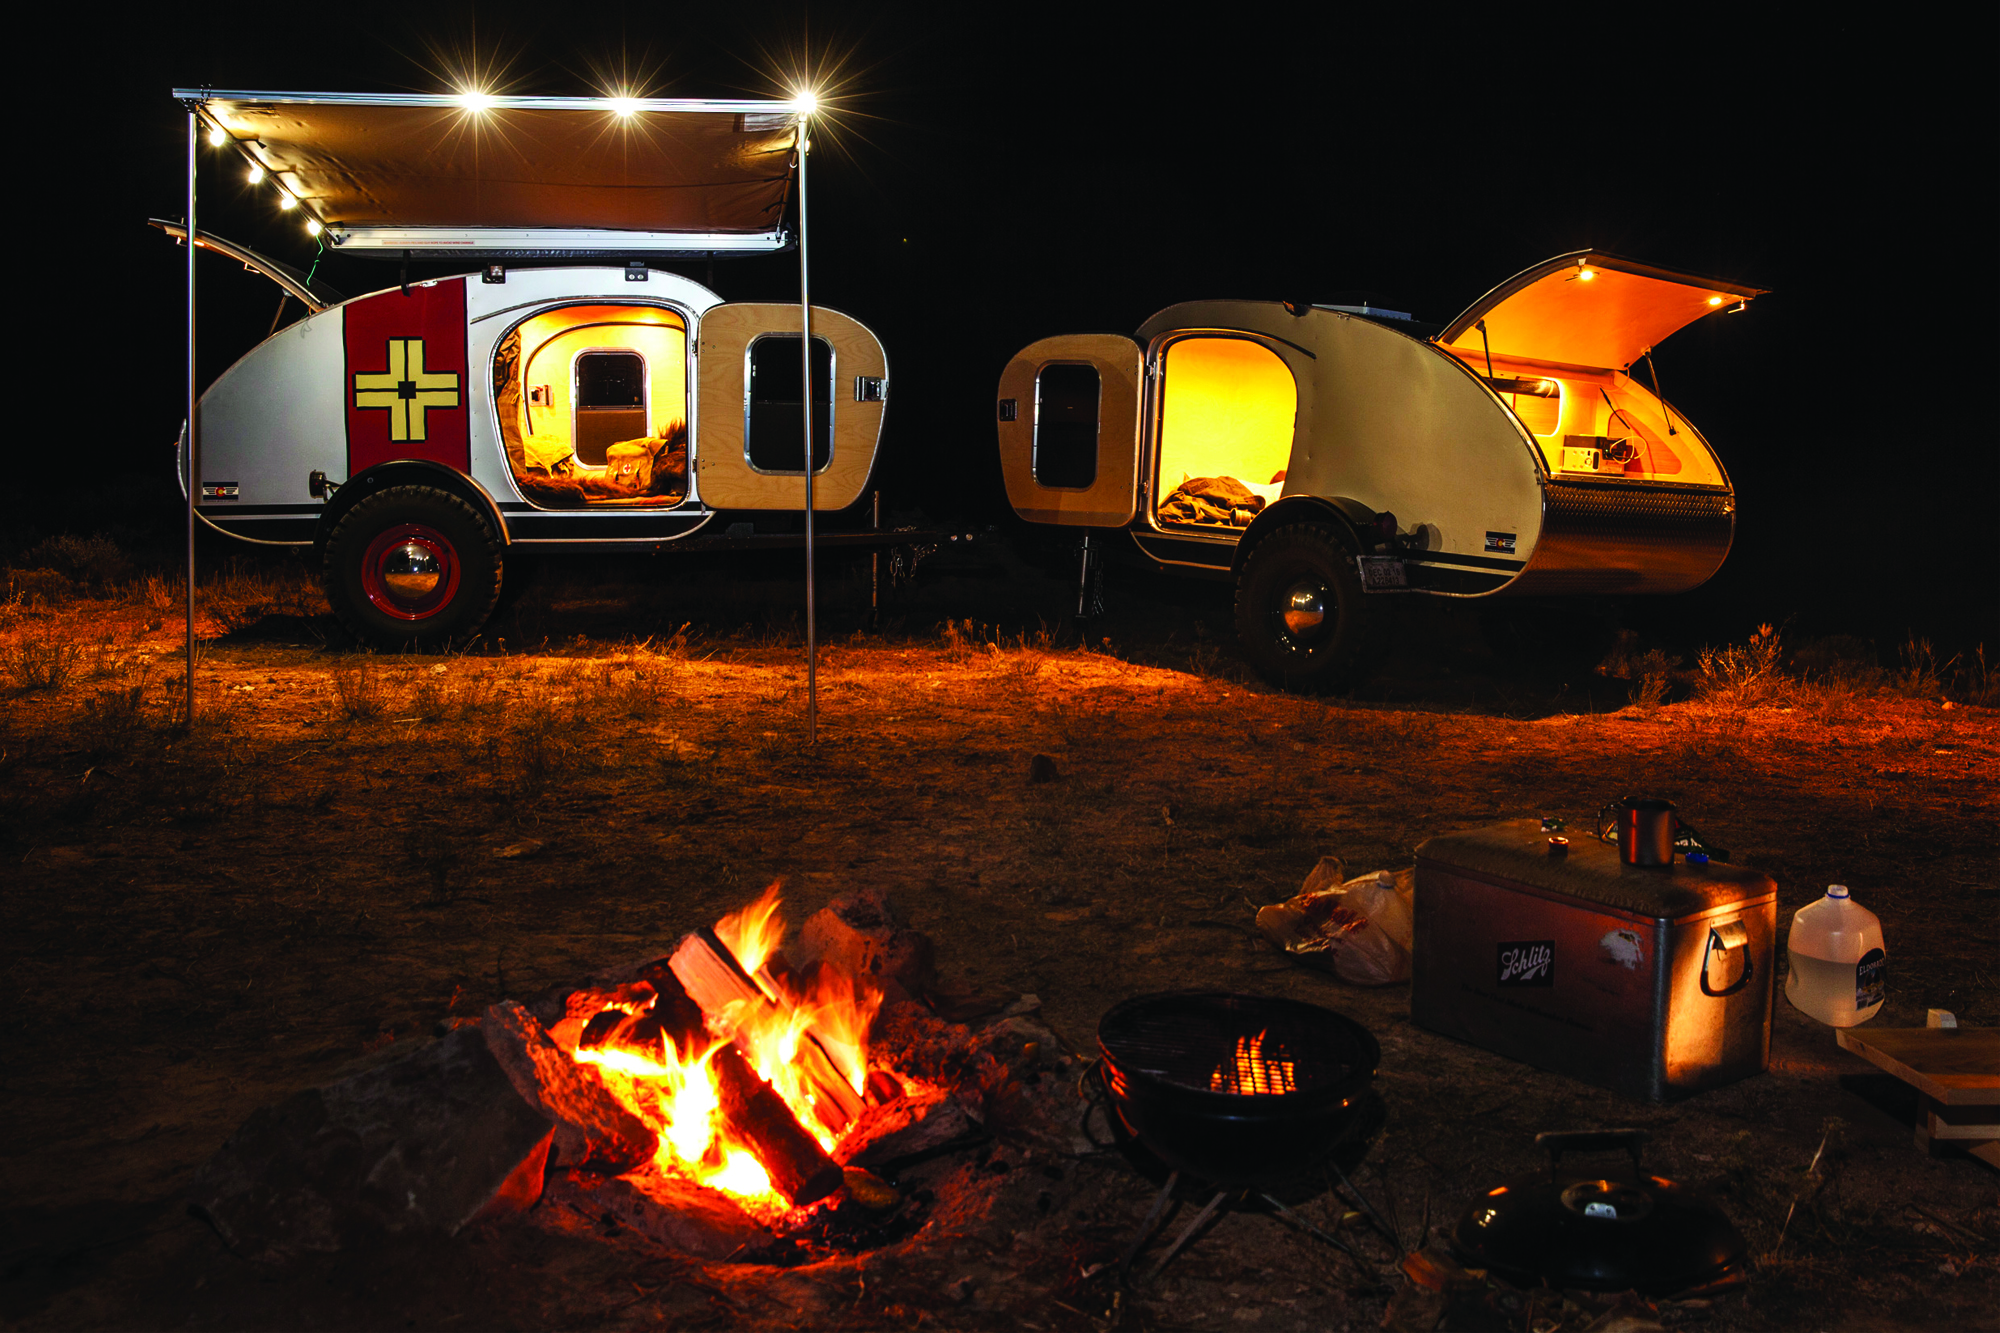 Gallery_night_camping